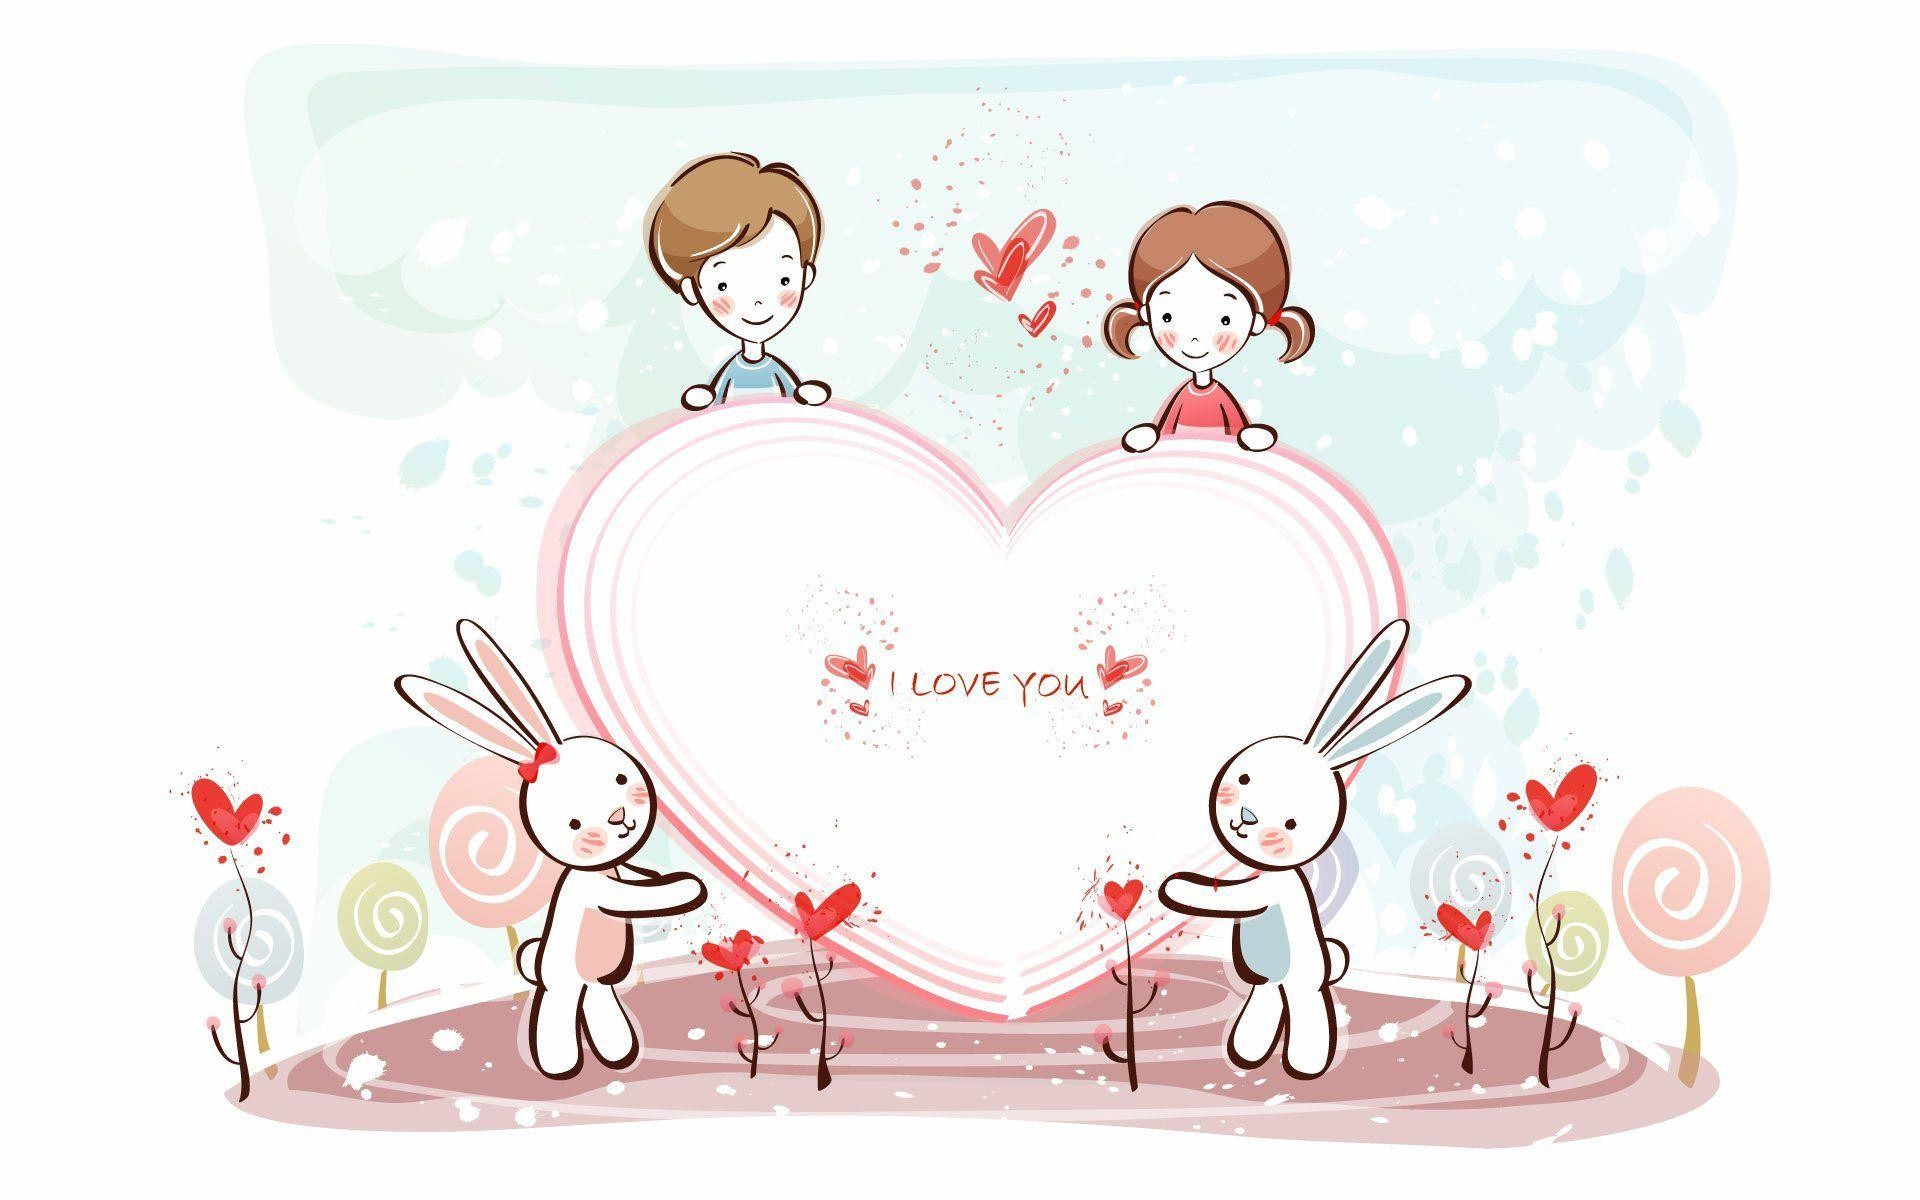 Cute Anime Love Desktop HD Wallpaper #2618 Cute Wallpaper xerobid.